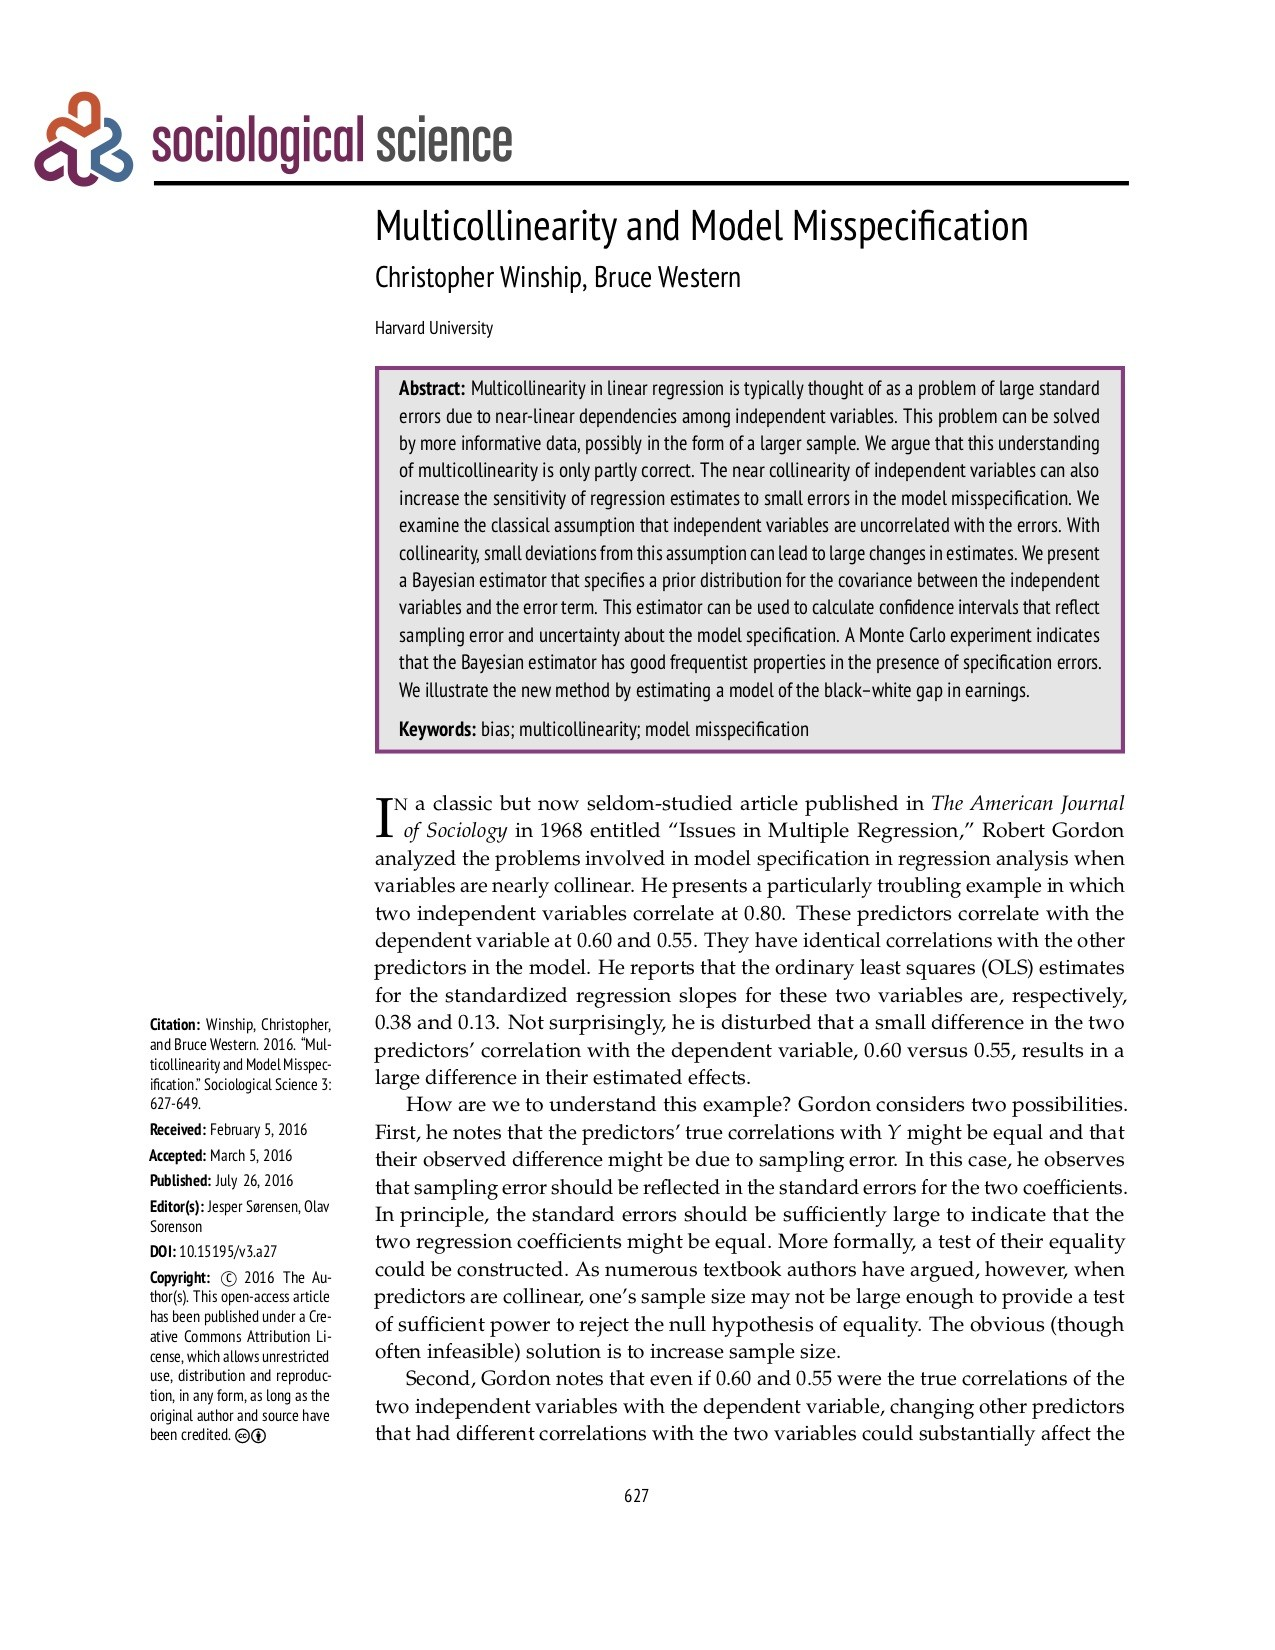 Multicollinearity and Model Misspecification